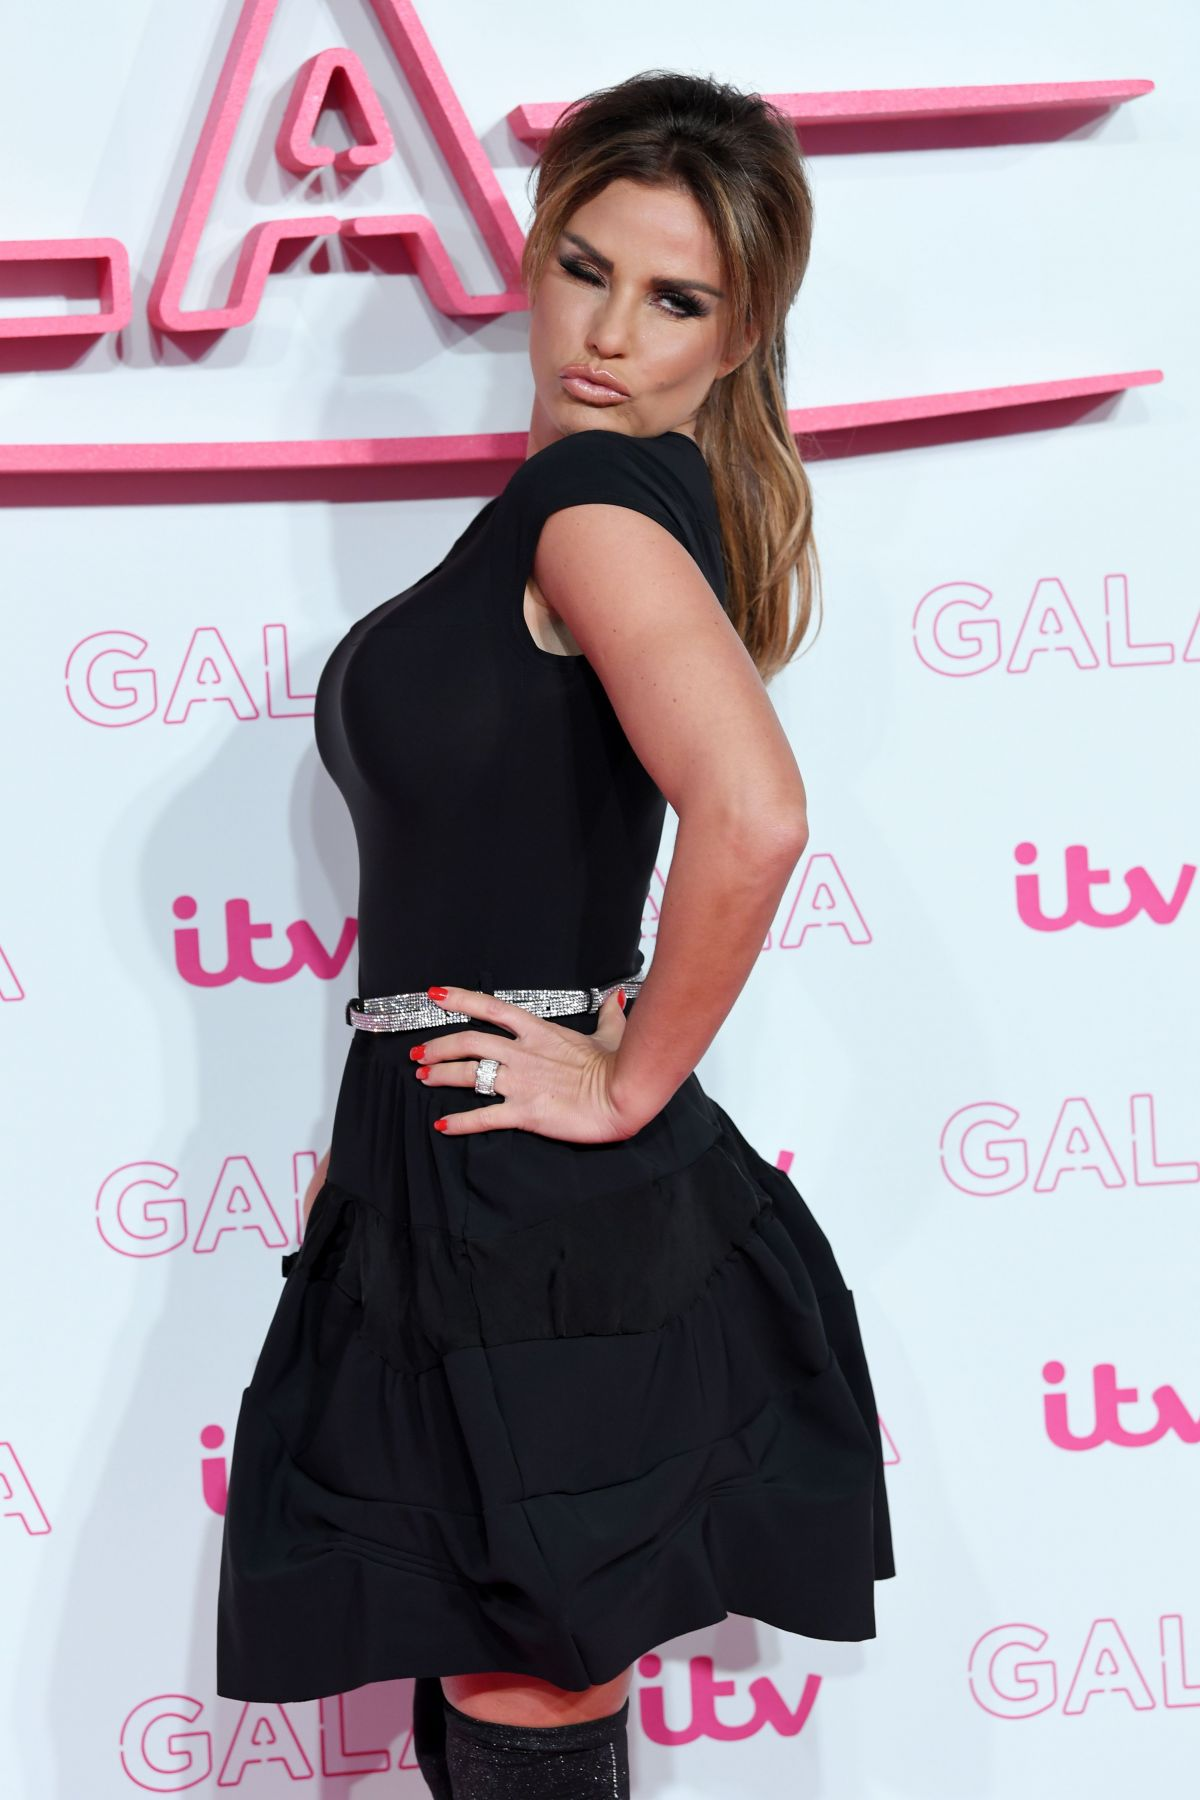 KATIE PRICE at ITV Gala in London 11/24/2016